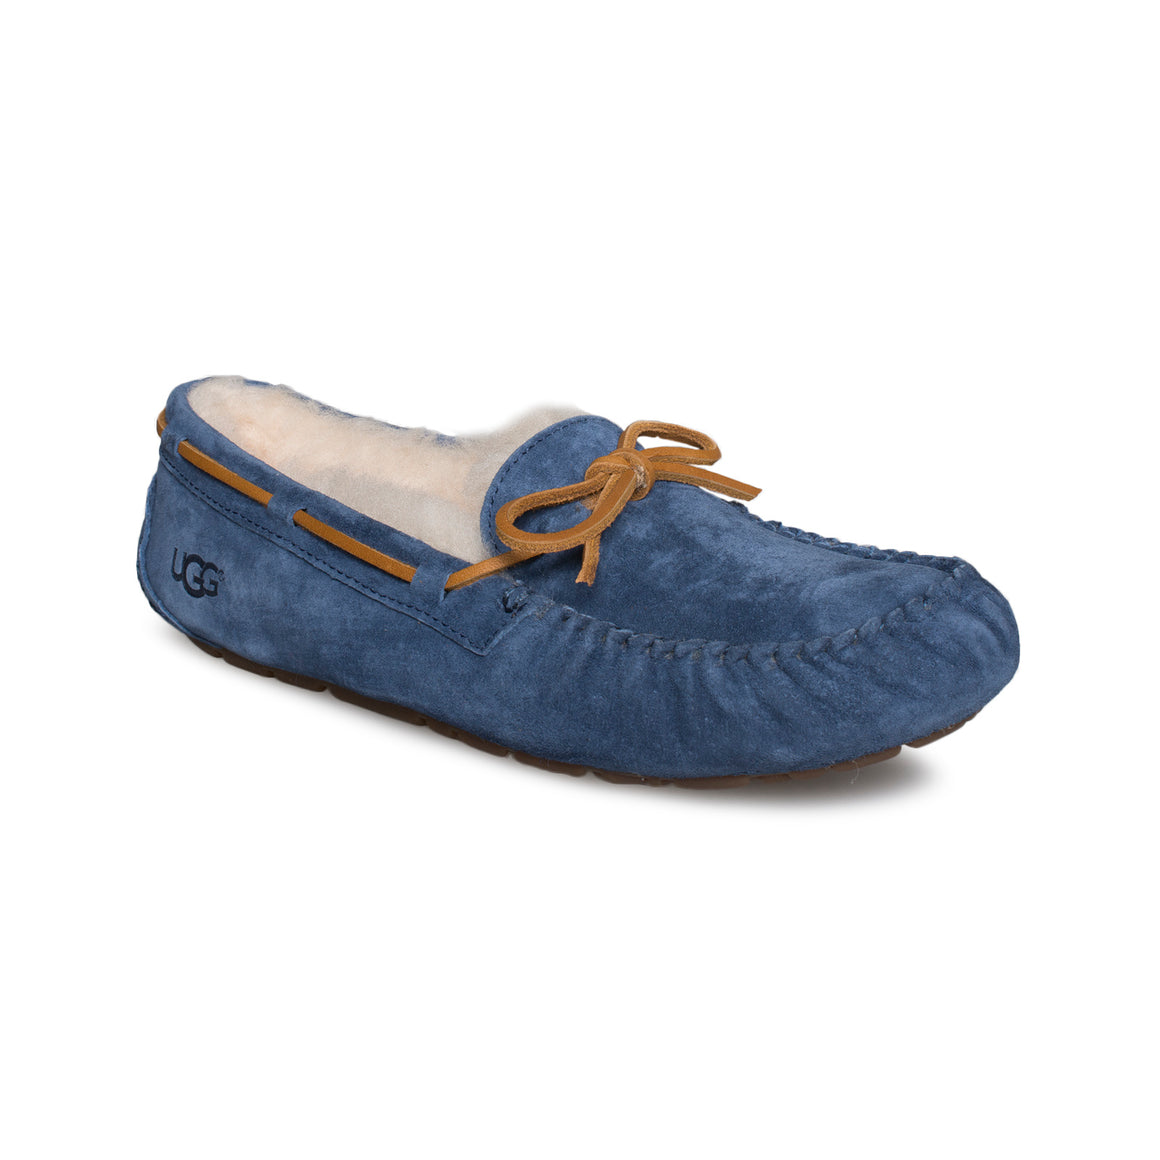 UGG Dakota Dark Denim Slippers - Women's